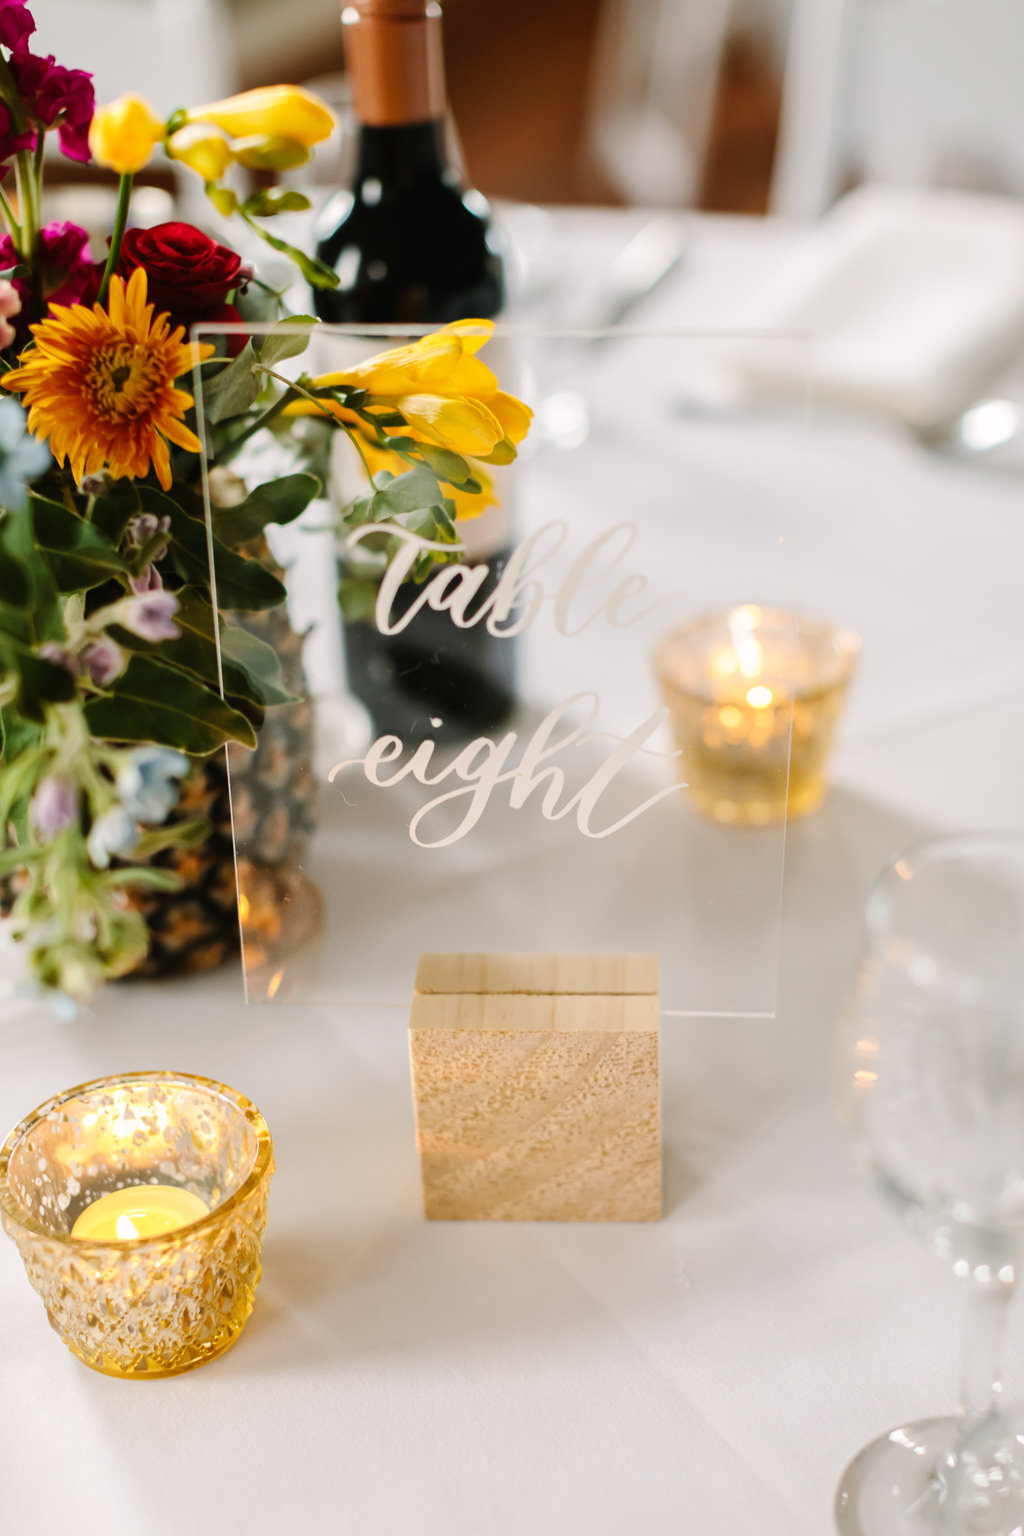 perspex table number - wedding reception - tropical themed wedding - Gemma Clarke Photography